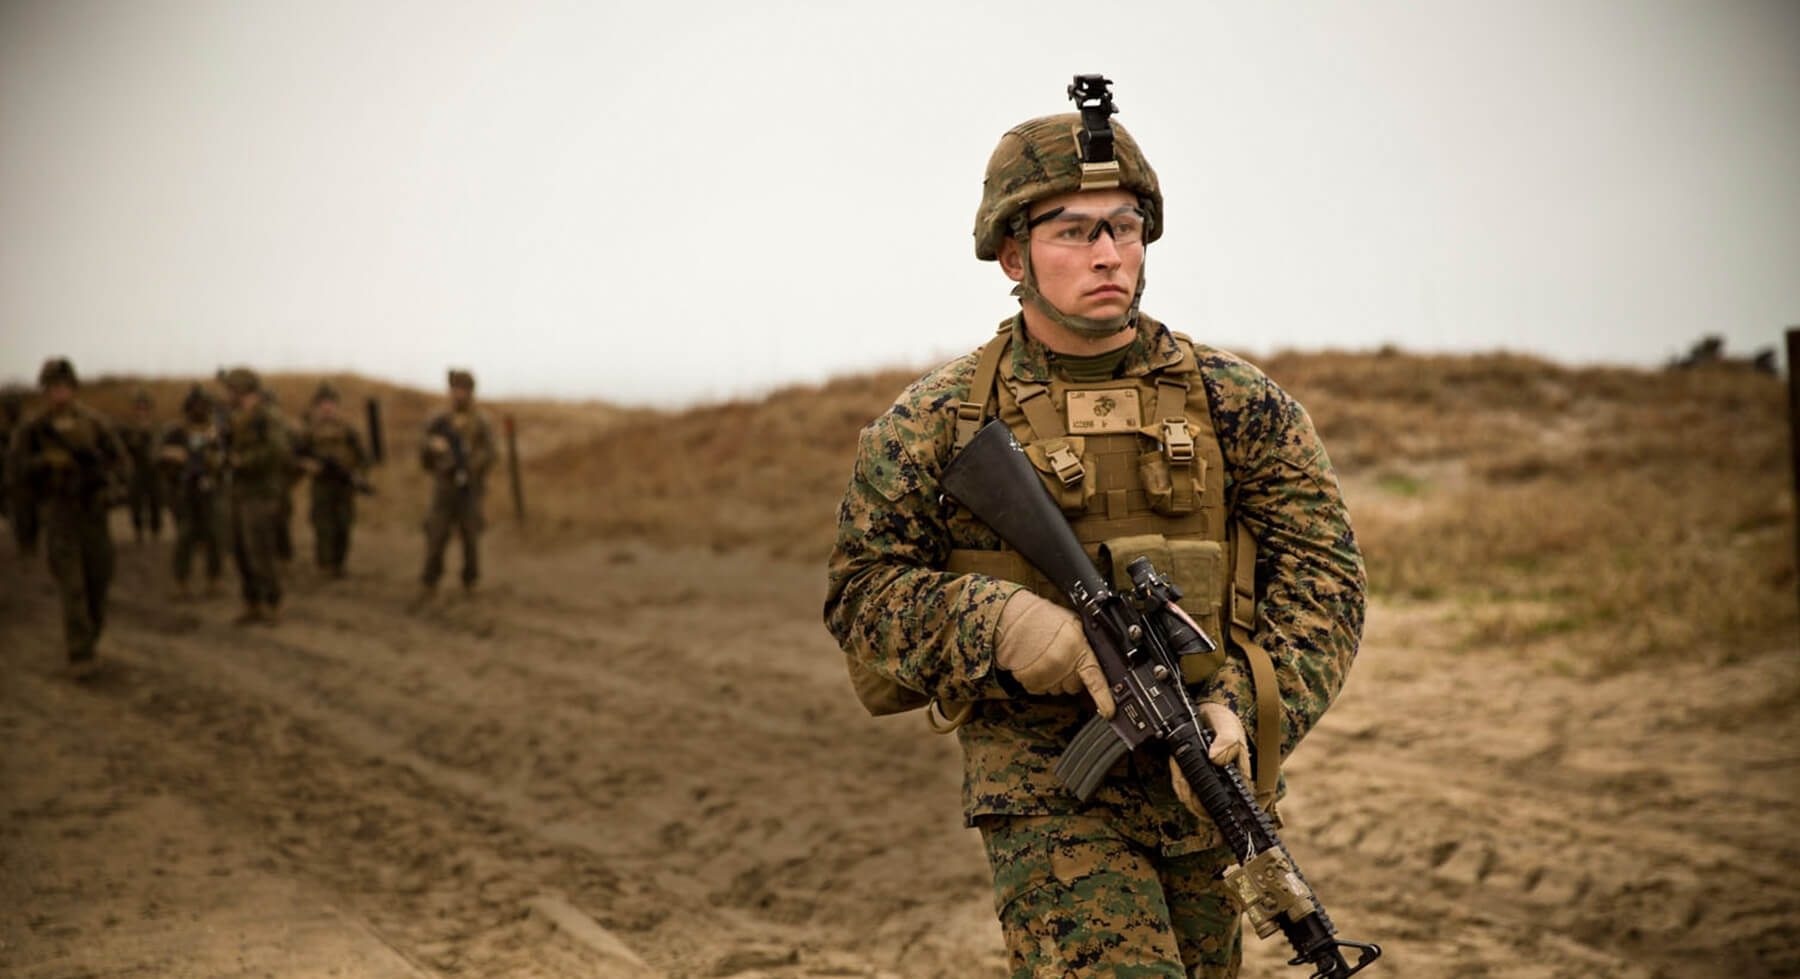 A Marine dressed in Combat Utility Uniform patrols with his M-16 service rifle.